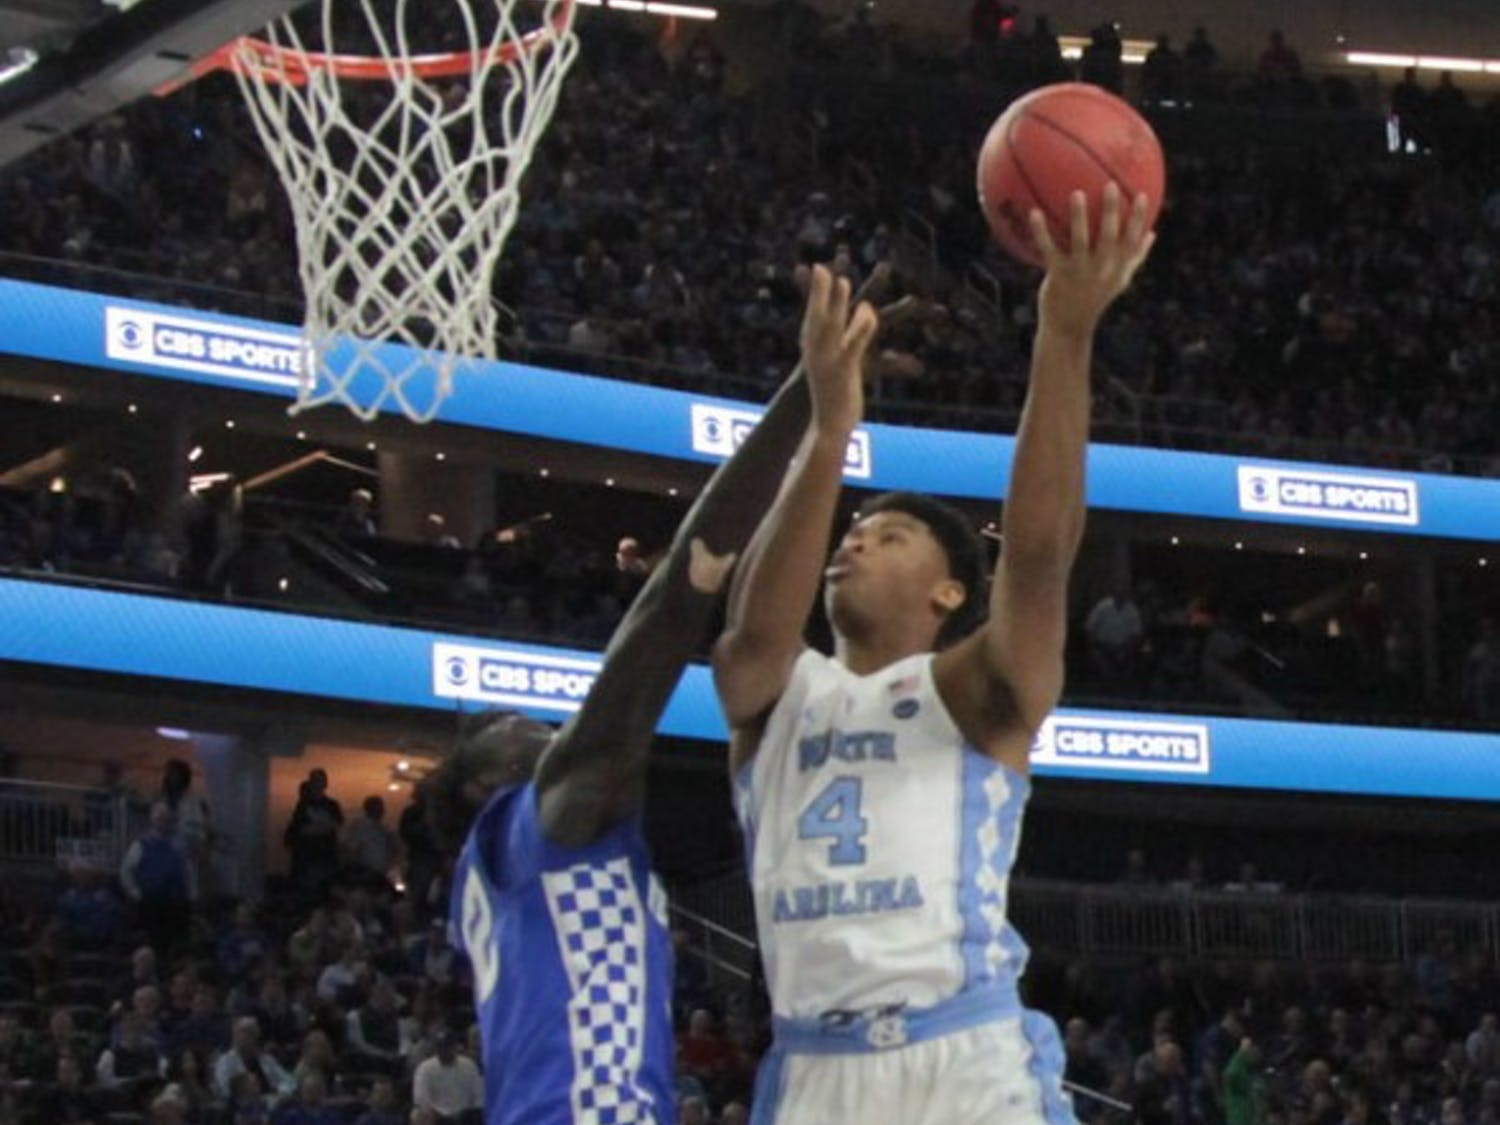 UNC forward Isaiah Hicks (4) goes up for a contested layup against Kentucky at the CBS Sports Classic on Saturday.